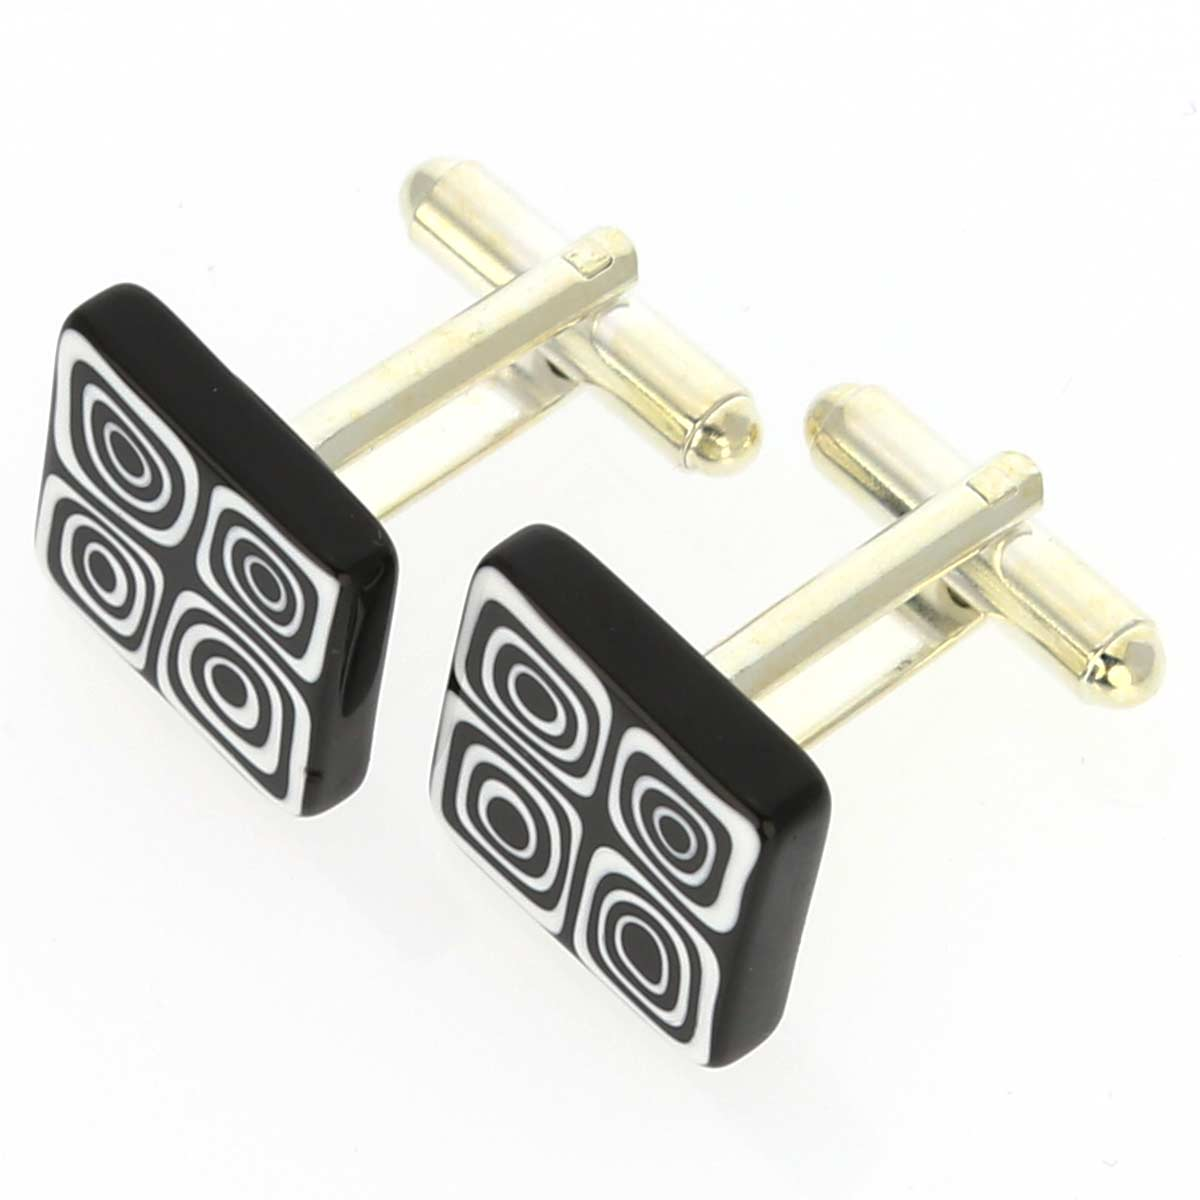 Murano Millefiori Square Cufflinks - Black and White